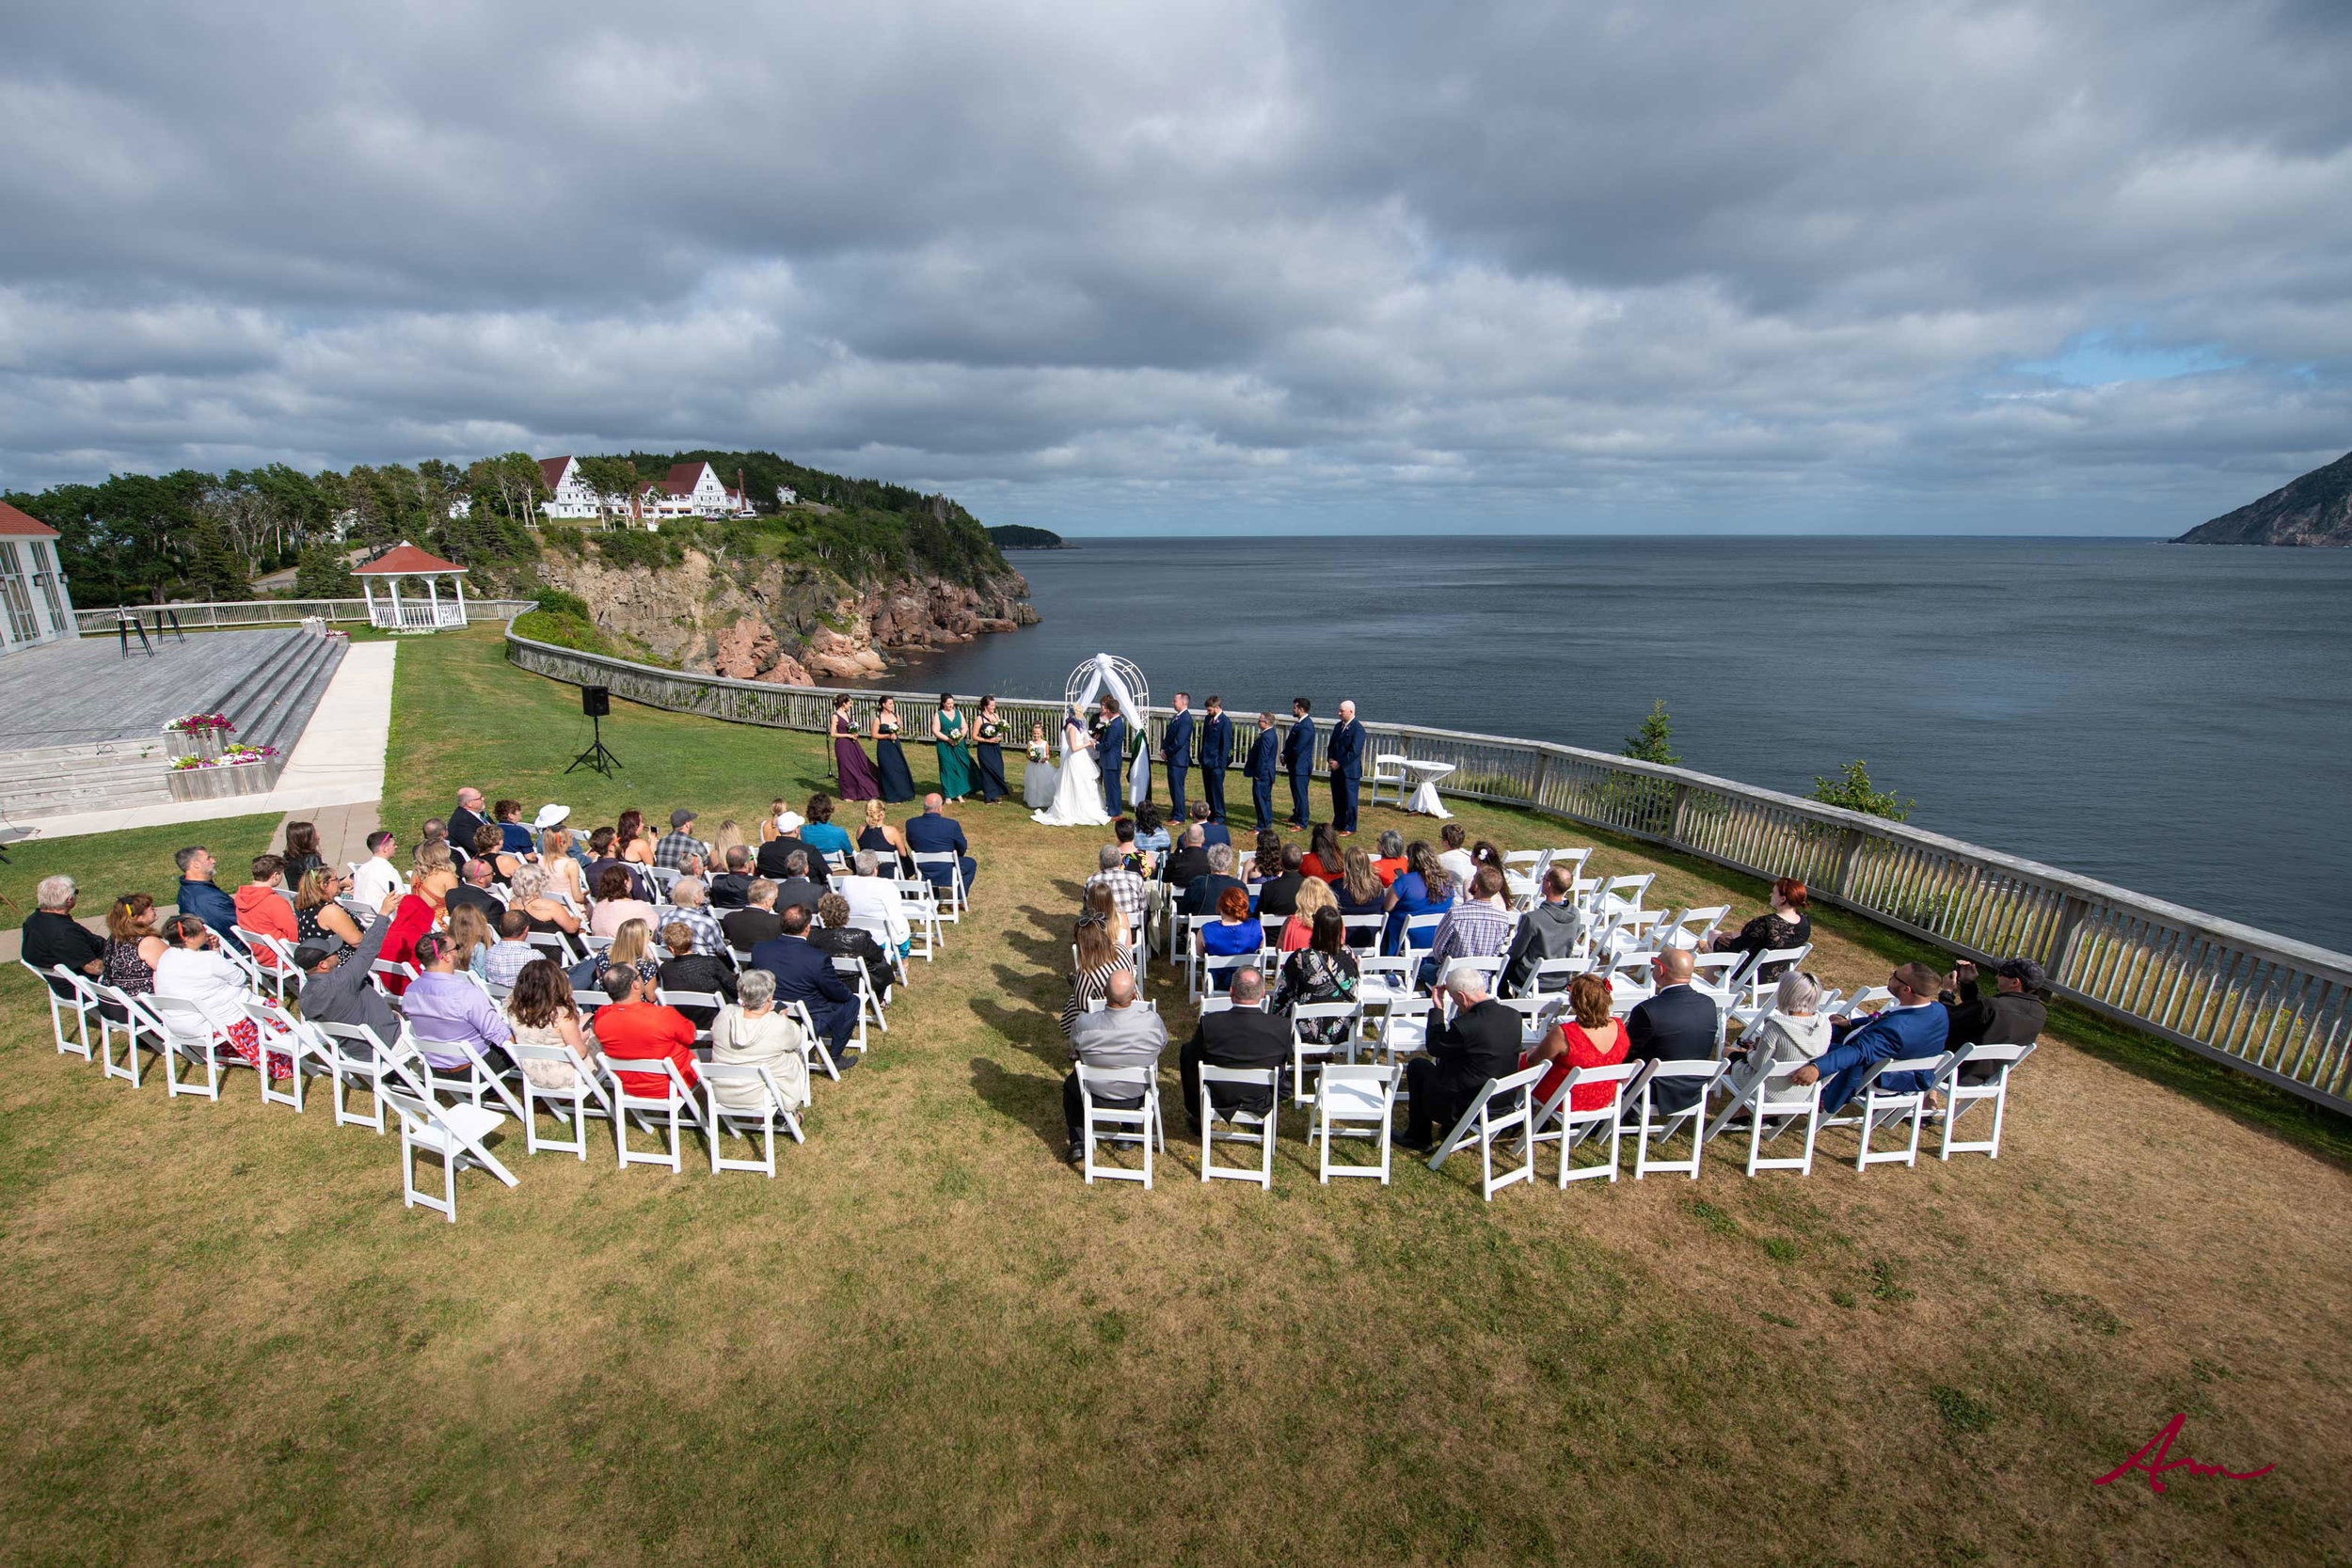 What a spot for a wedding ceremony!